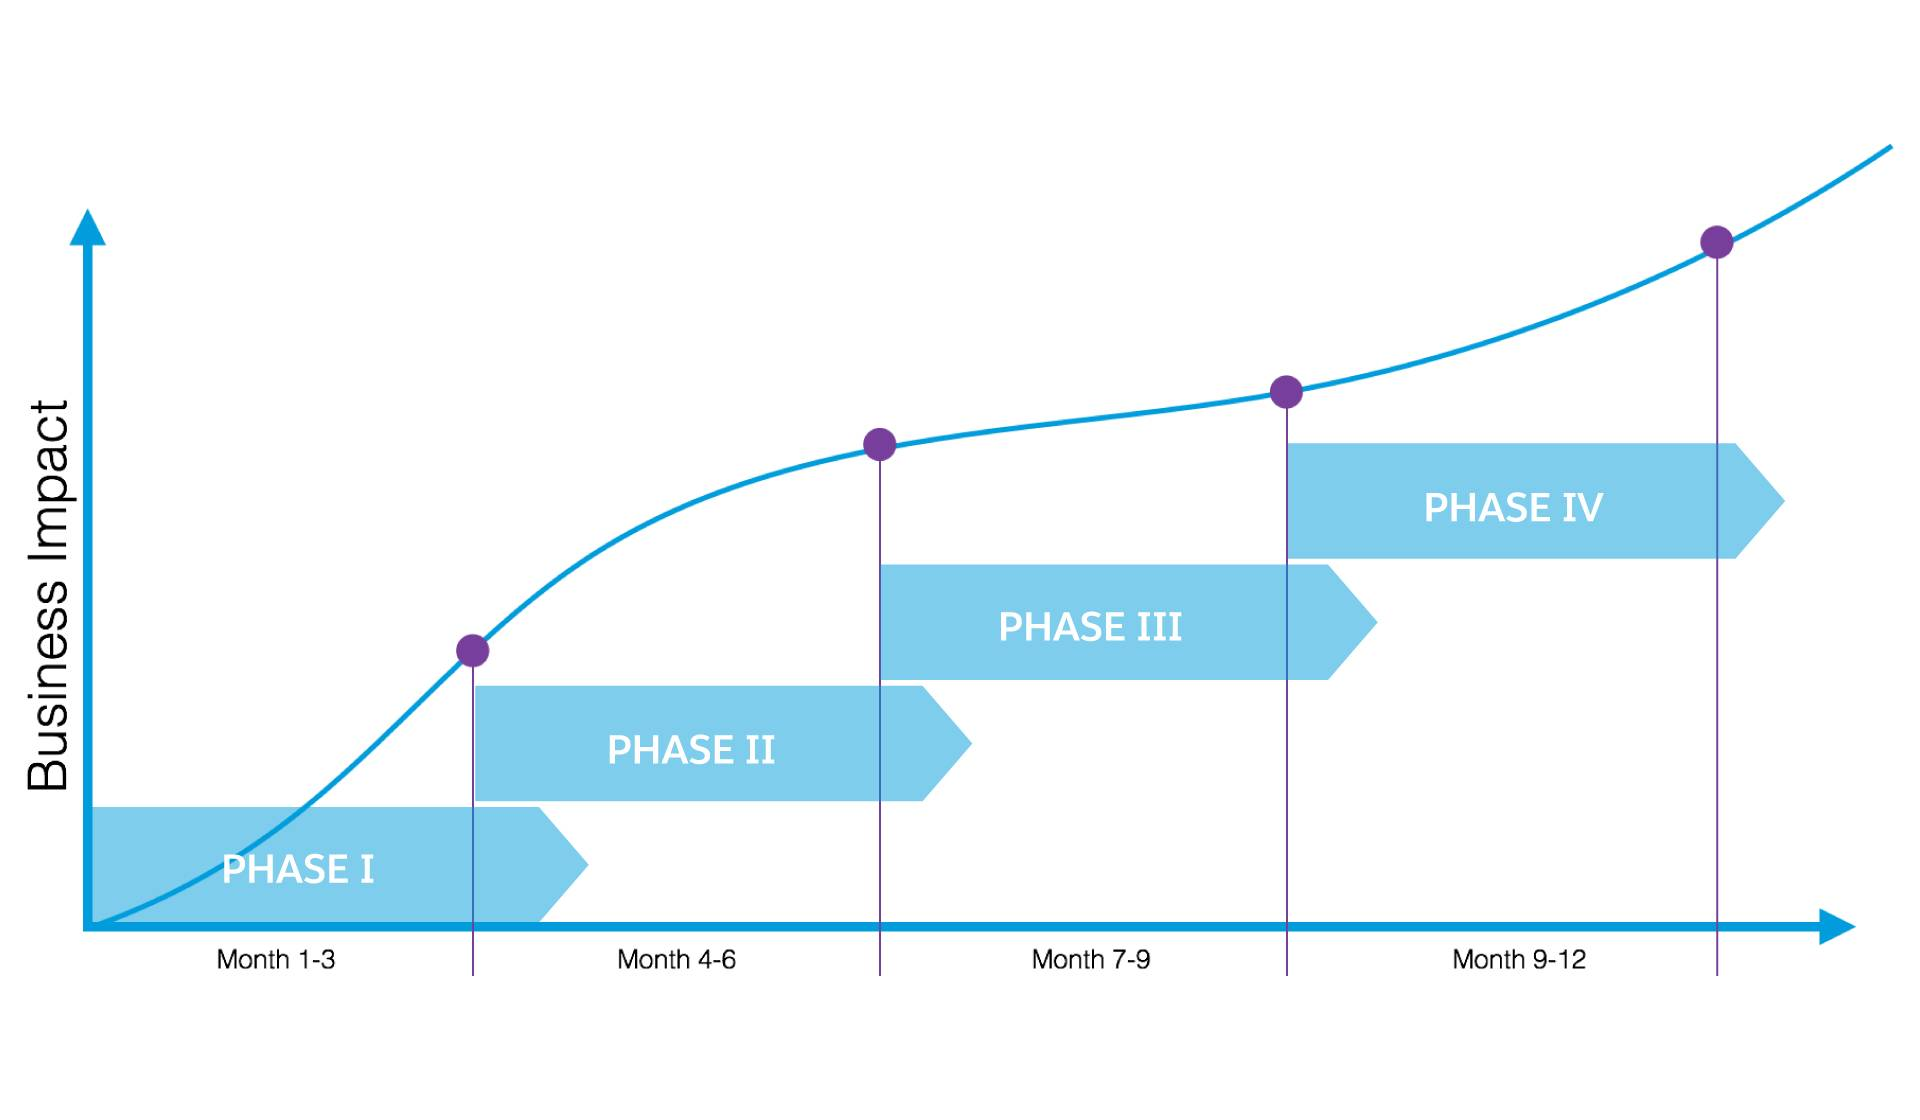 Business impact calendar chart, business impact phases on y axis, months on y axis